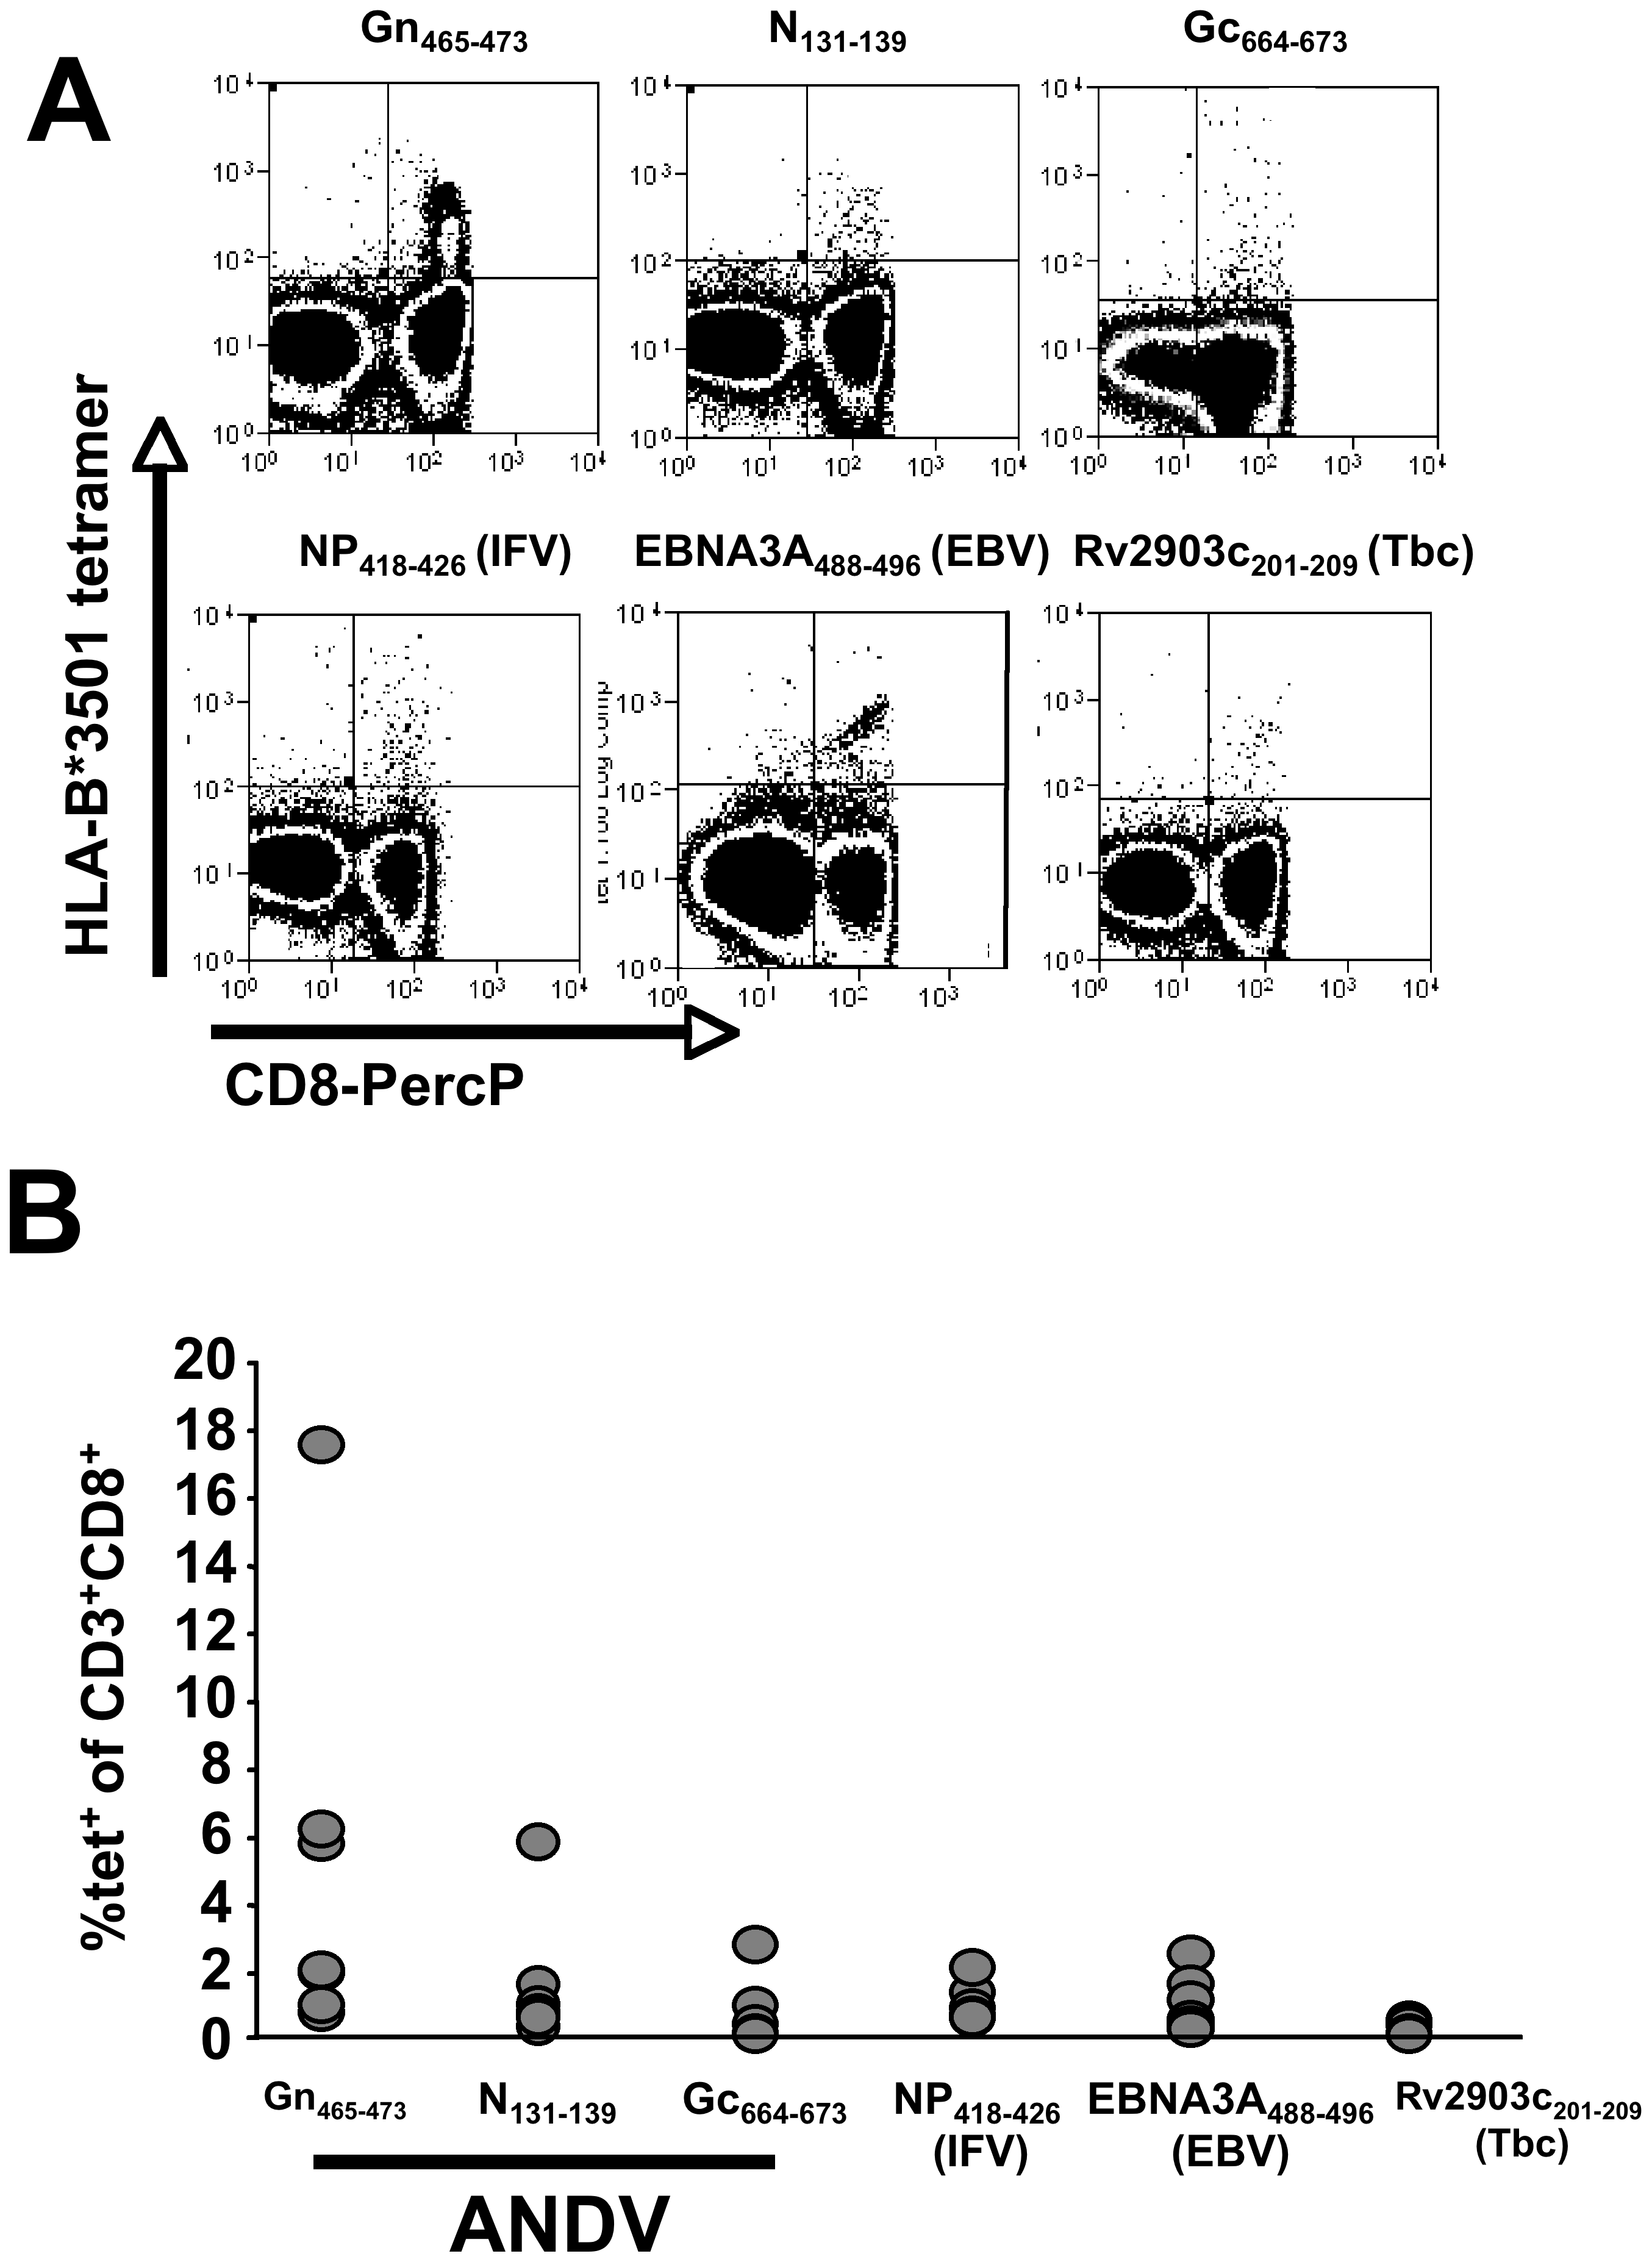 Tetramer analysis of pathogen specific CD8+ memory T cells in seven HLA-B*3501<sup>+</sup> individuals.